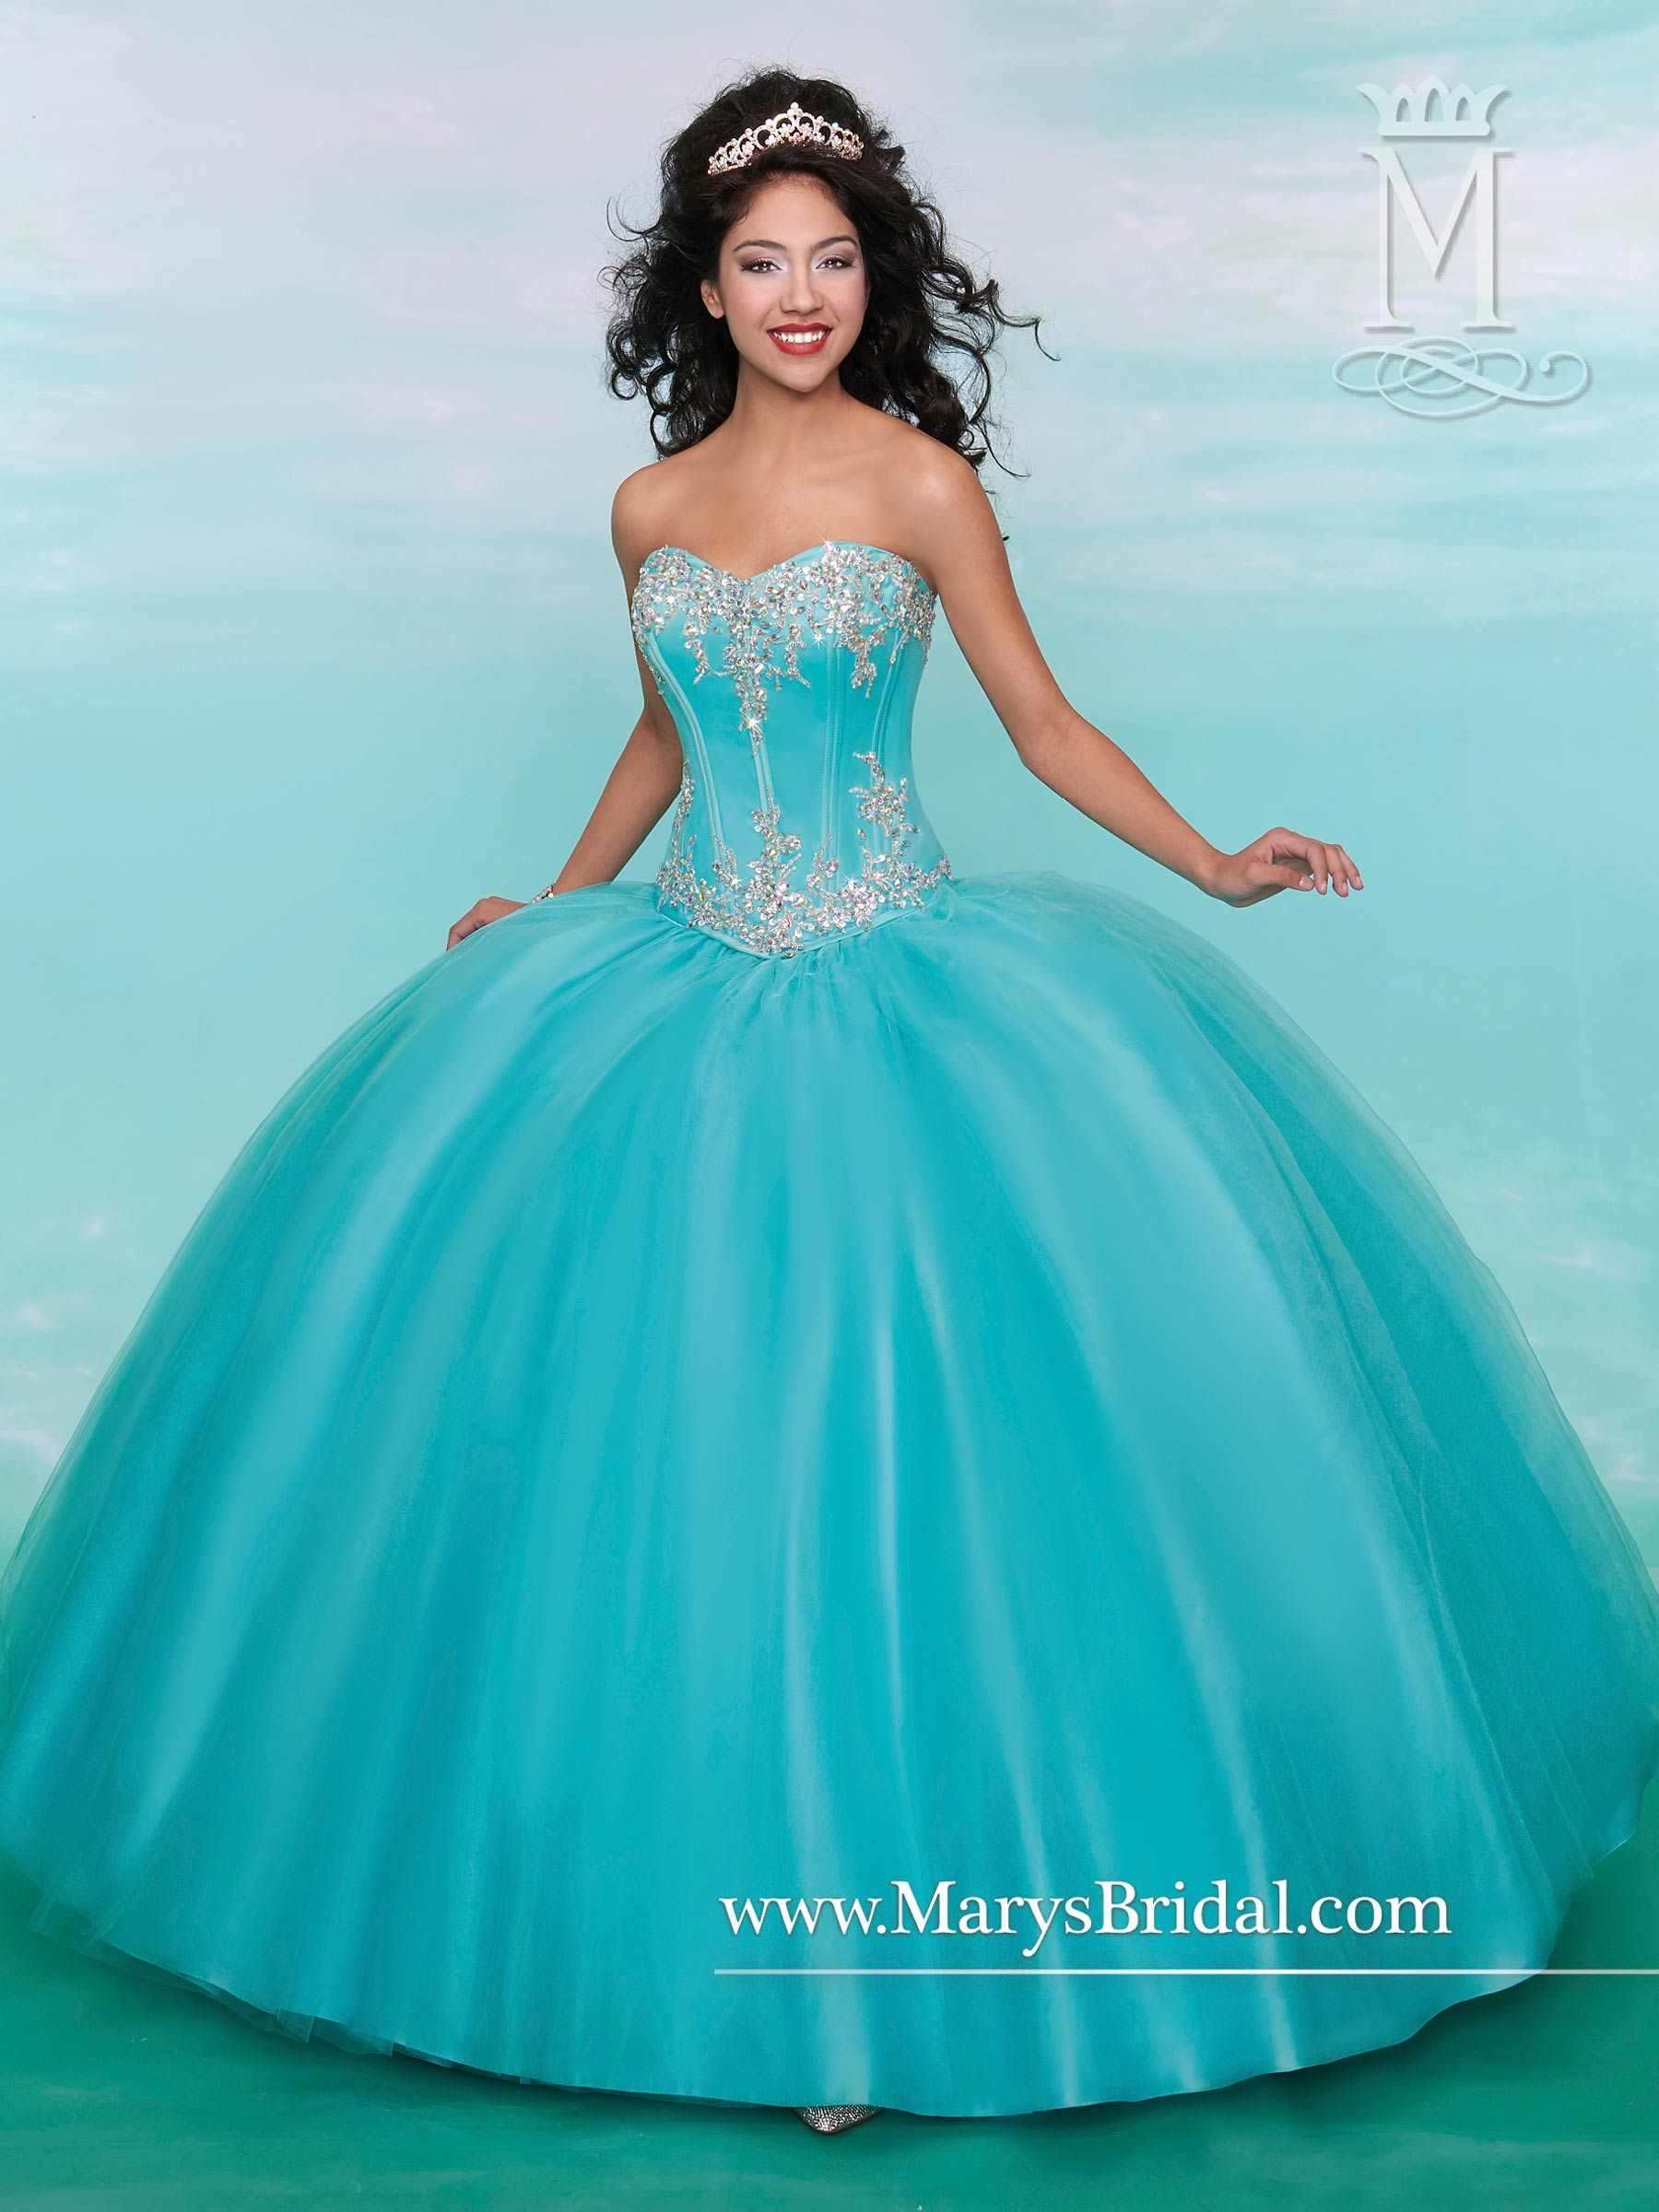 c6e23d03baa Aqua tulle quinceanera ball gown with strapless sweetheart neckline ...